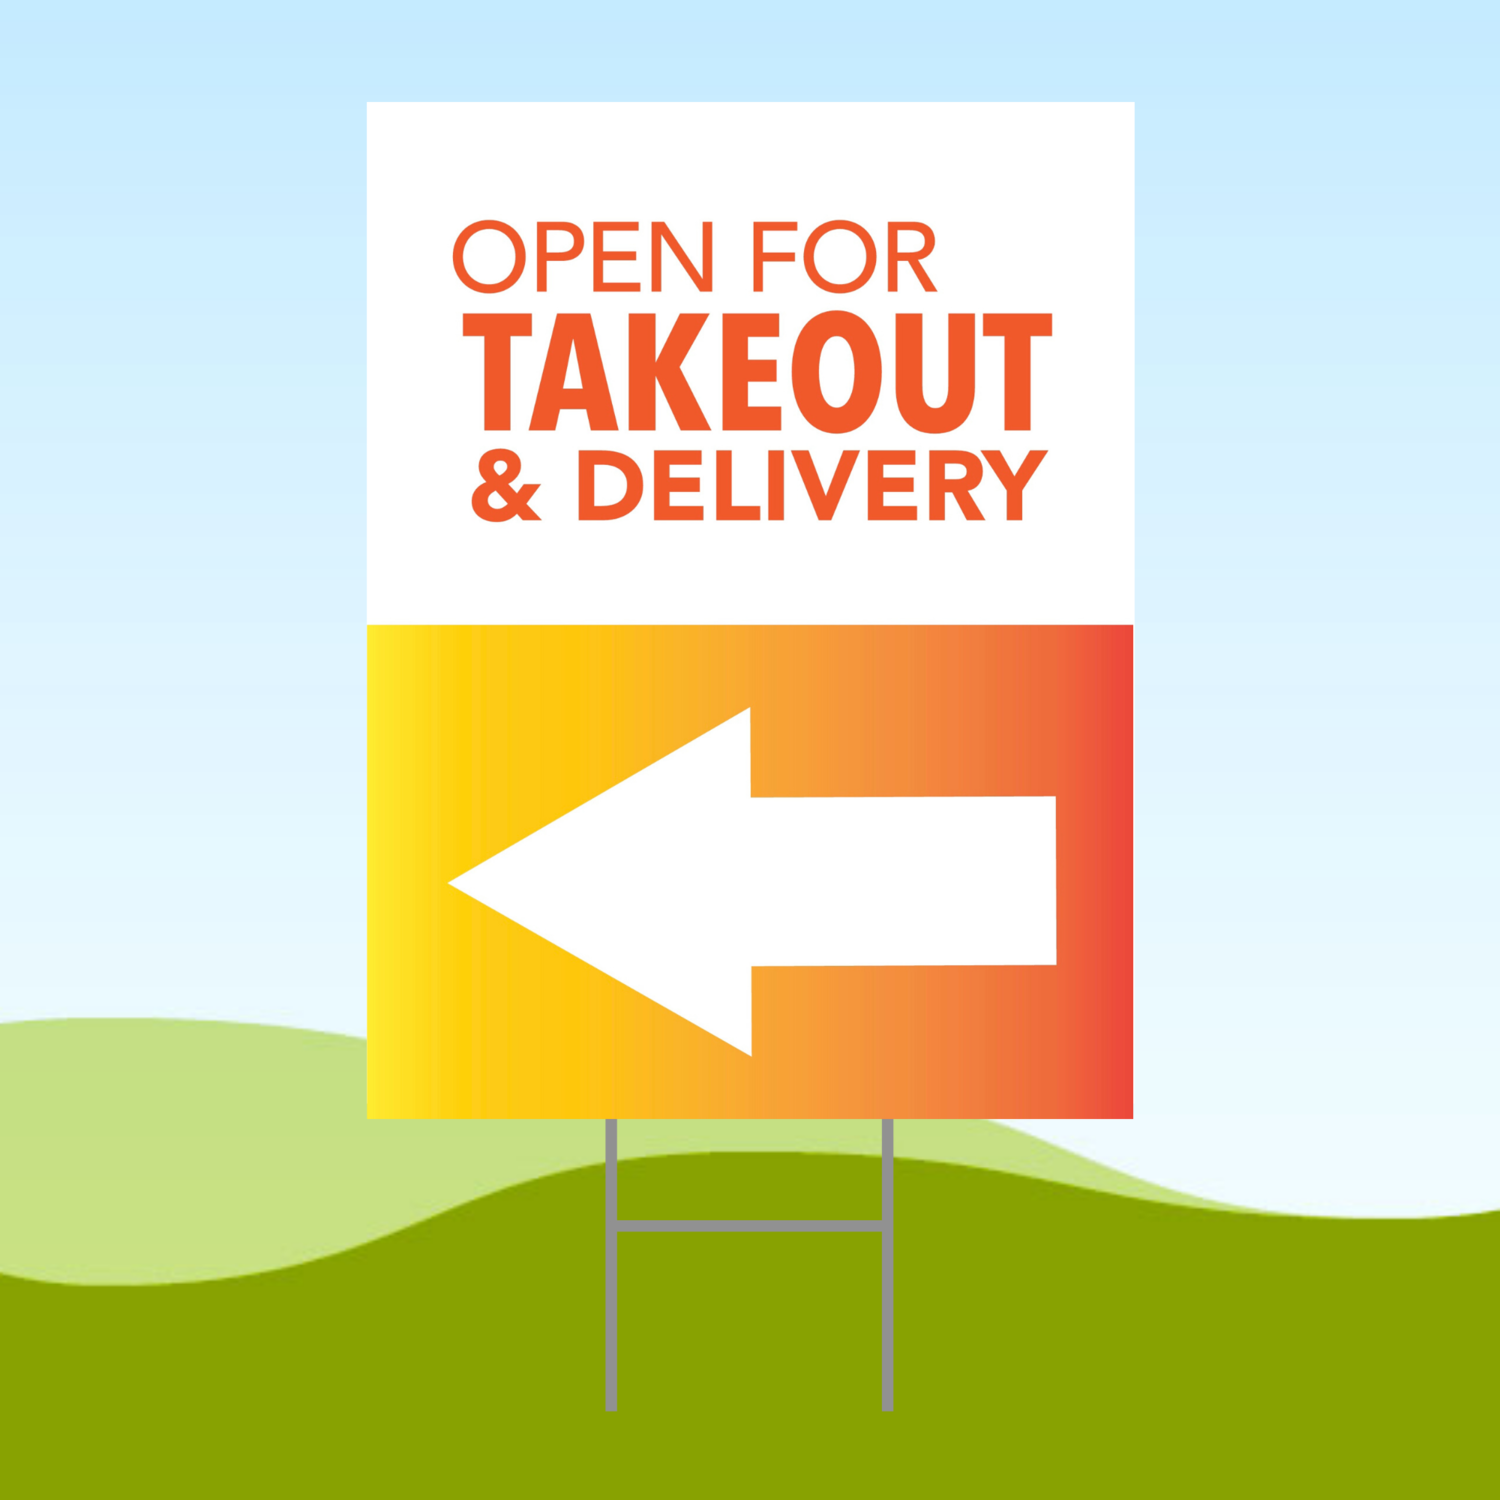 Open For Takeout Arrow LEFT 18x24 Yard Sign WITH STAKE Corrugated Plastic Bandit